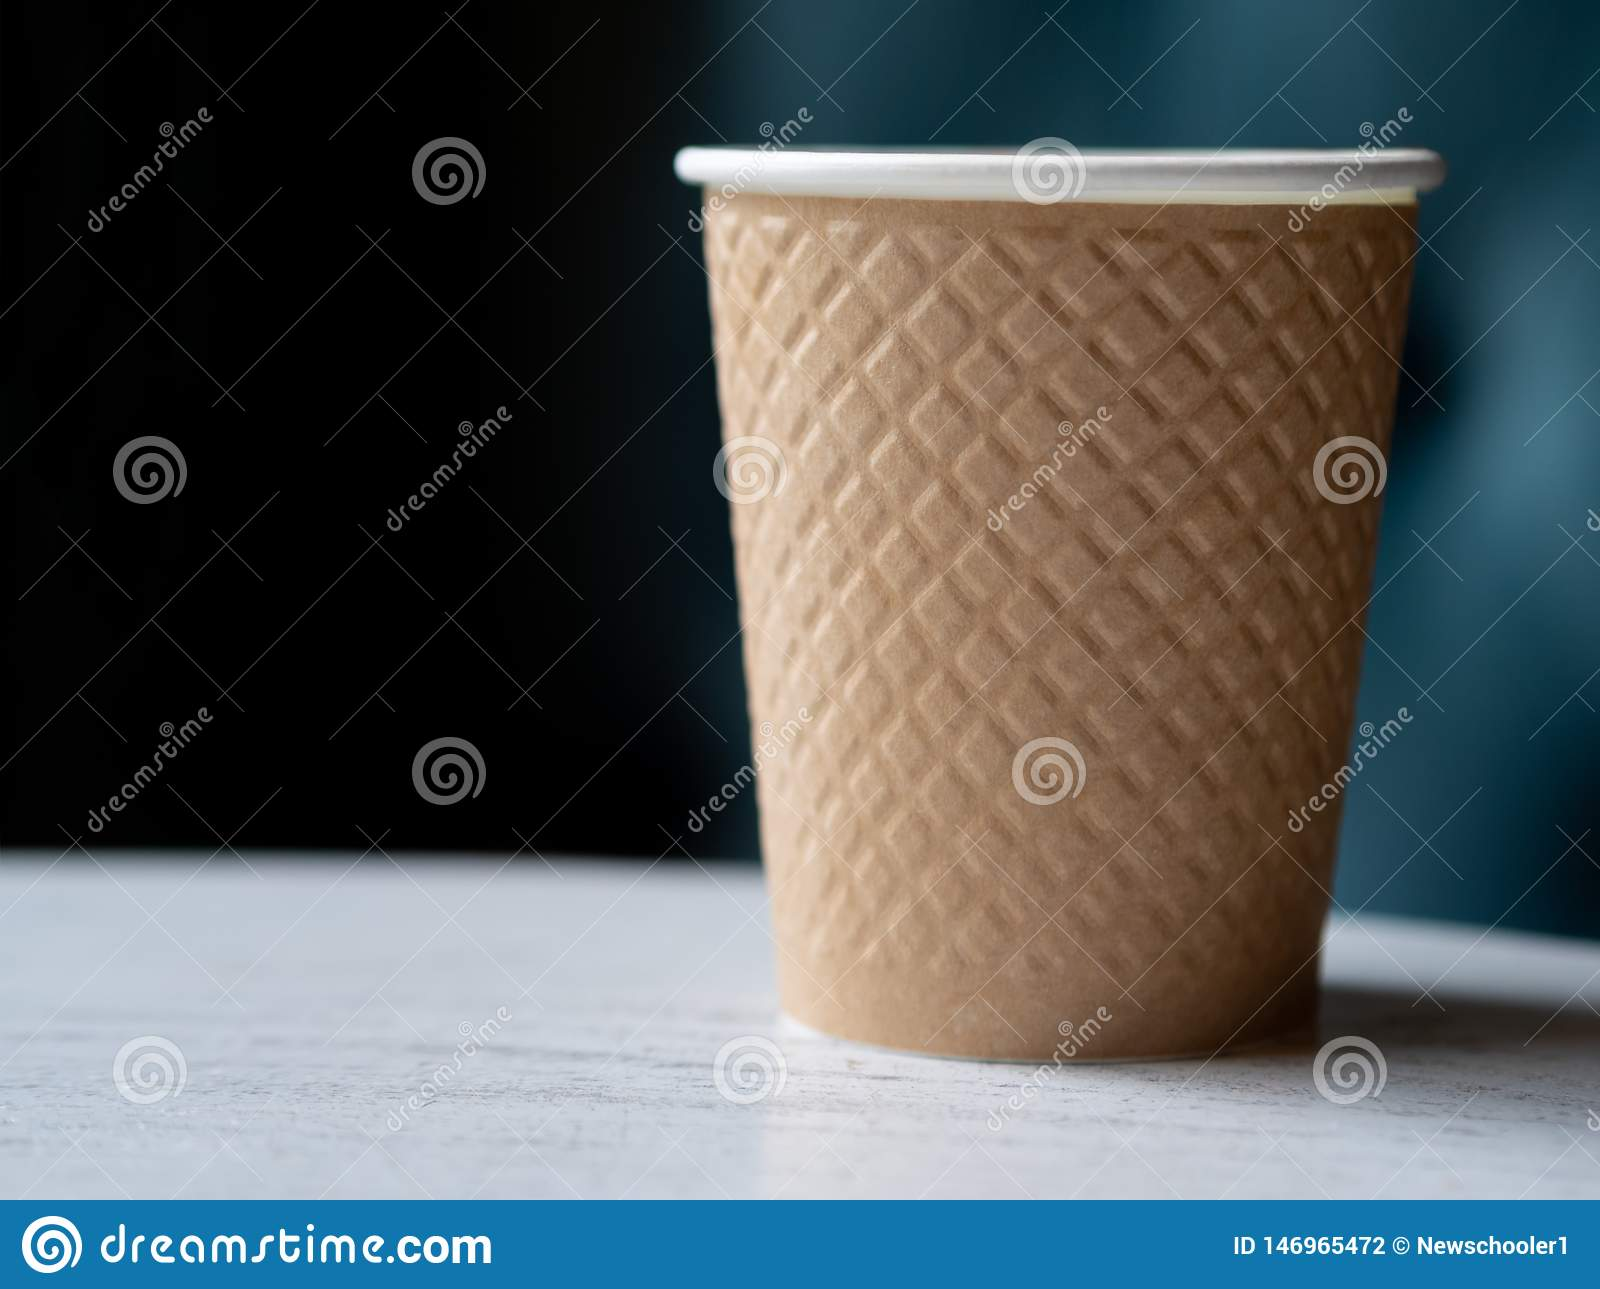 Take away a plastic cup of coffee